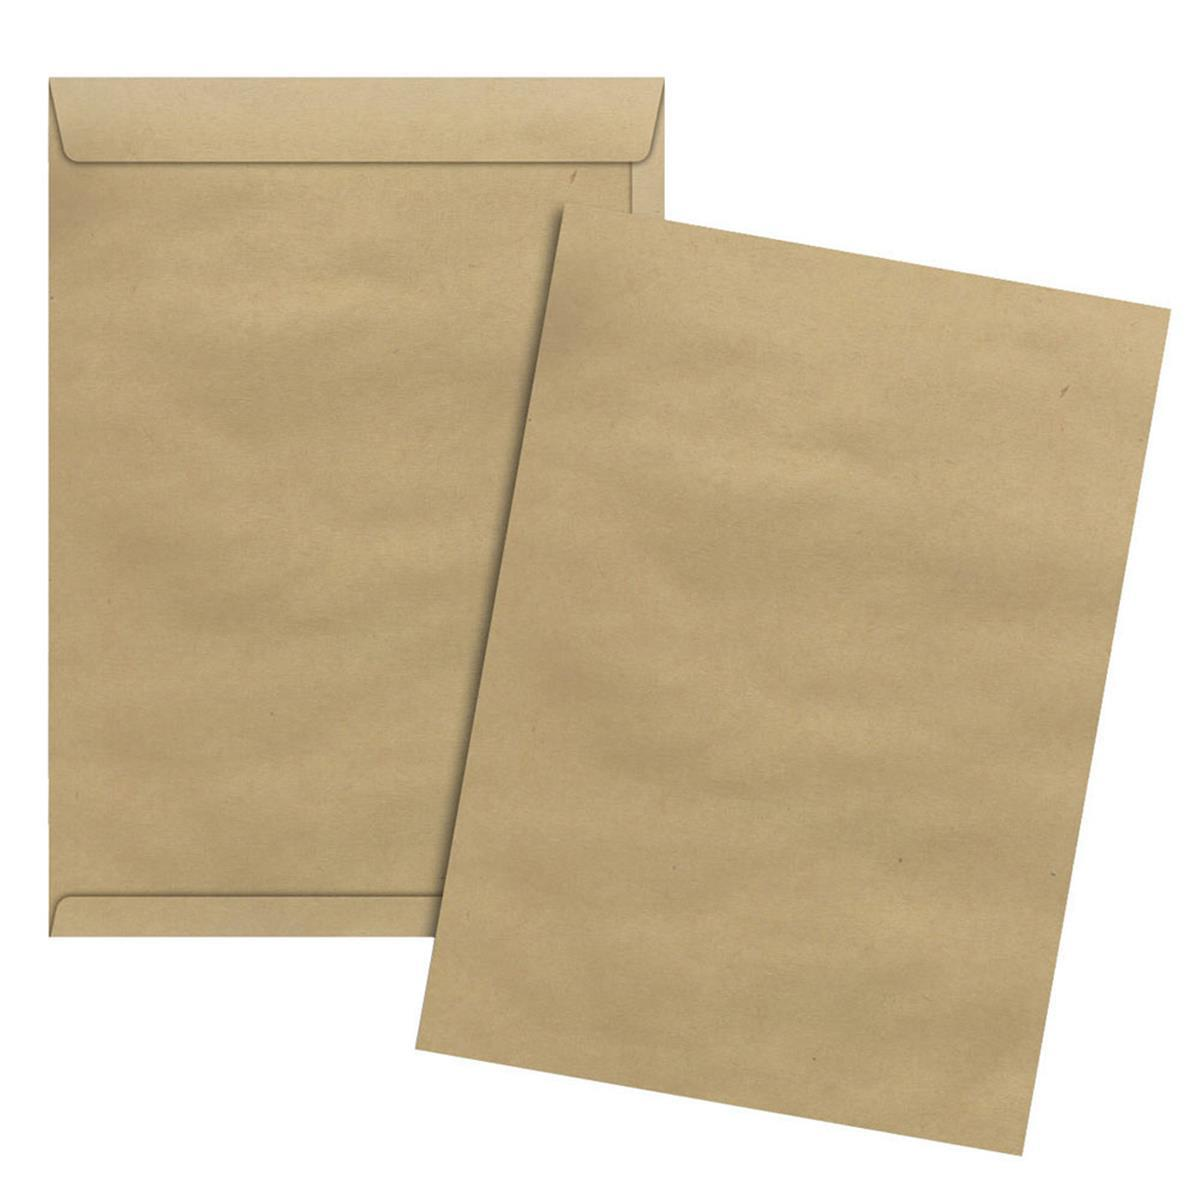 Caixa Envelope A4 Kraft Natural 229x324 100 unidades - Scrity